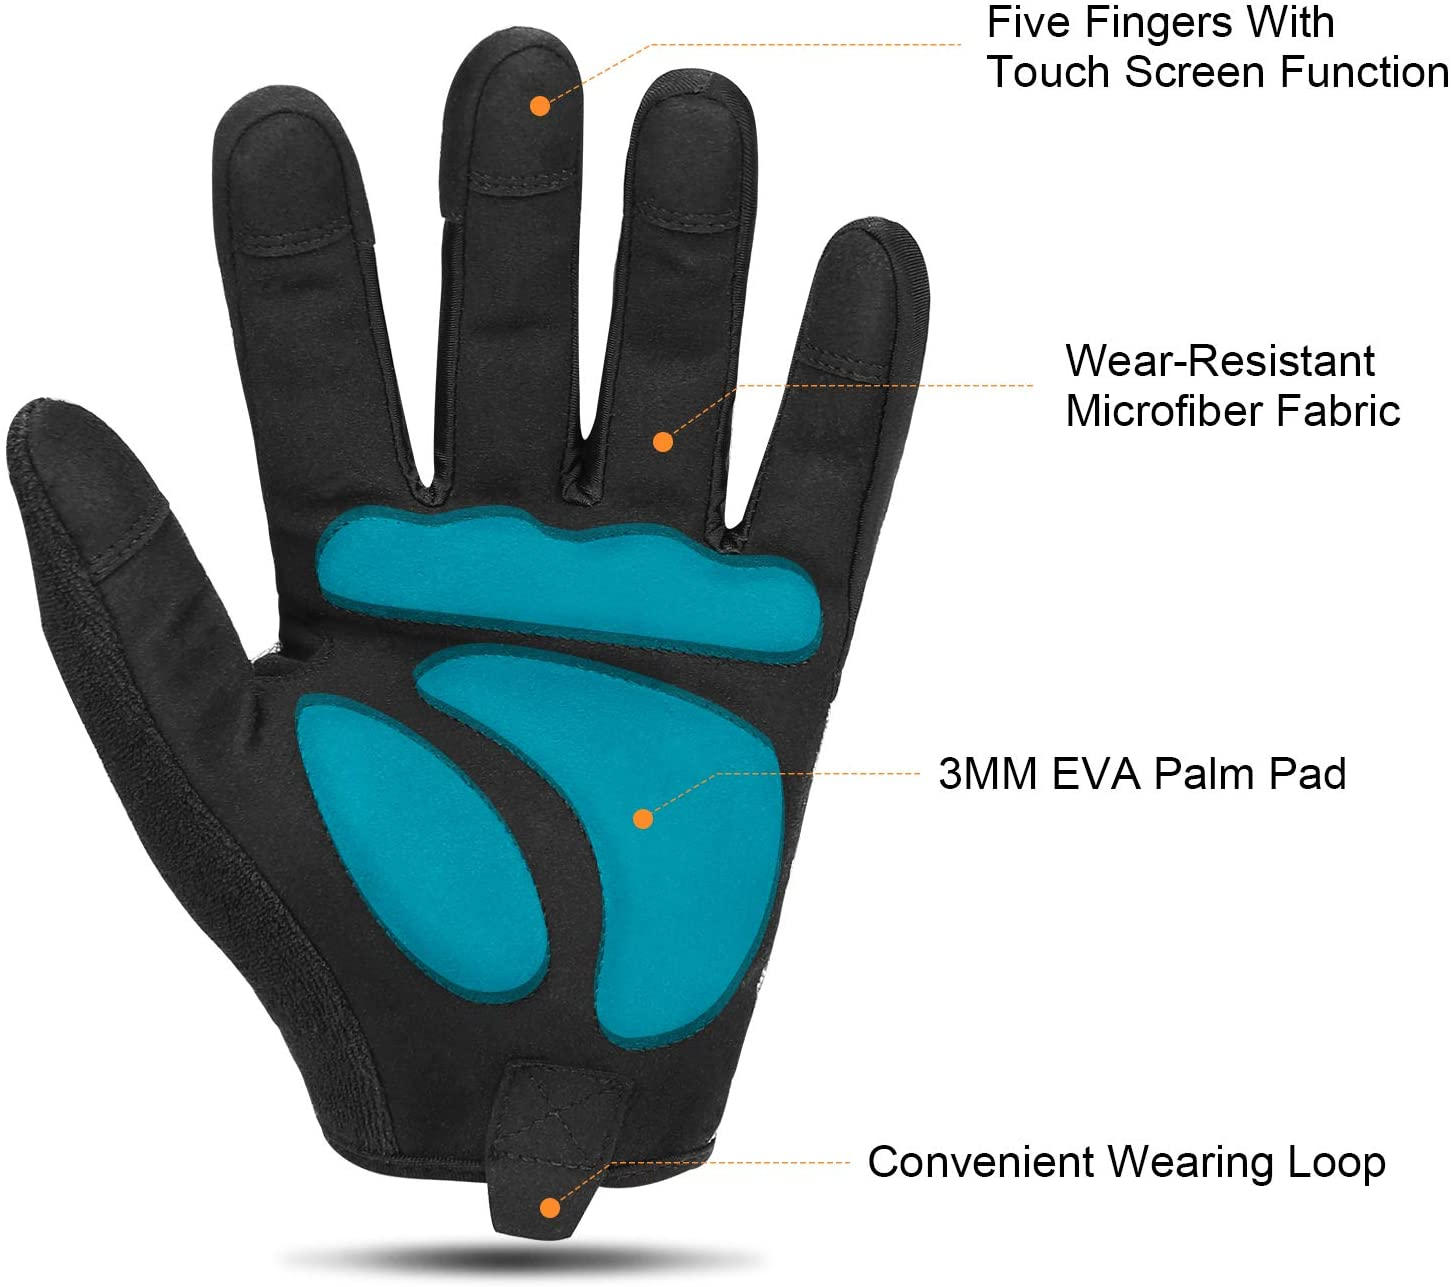 KUTOOK Multifunctional Full Finger EVA Padded Gloves Touch Screen for MTB Cycling Climbing Hiking Shooting Fishing Working Outdoor